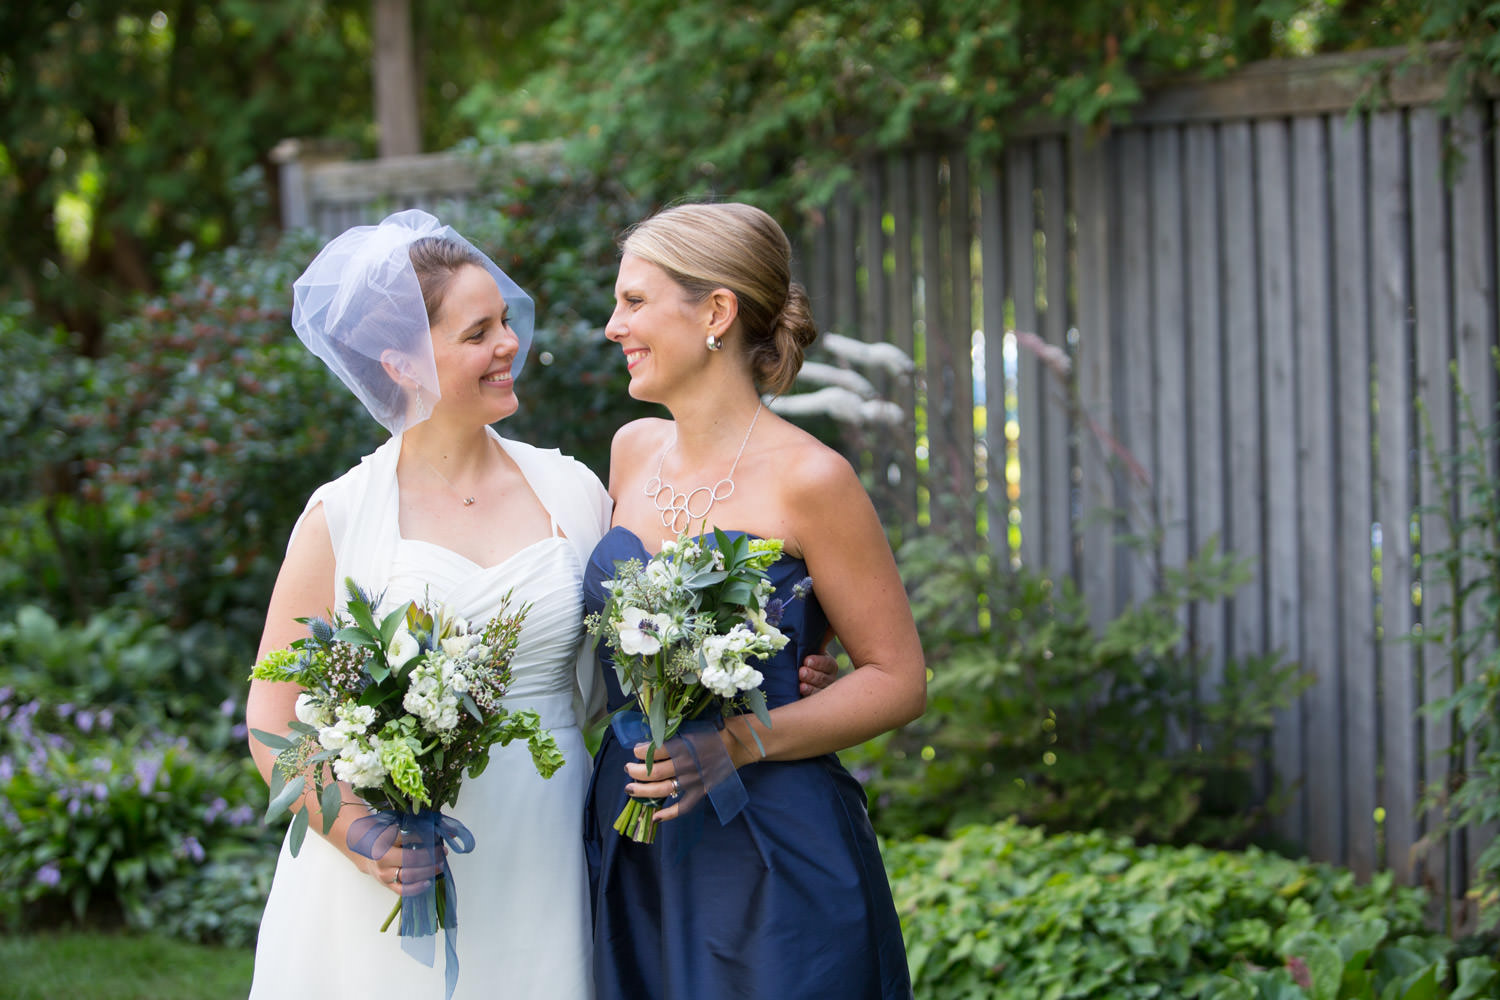 A family wedding group portrait of a bride and her sister in Montpelier Vermont by wedding photographer Stina Booth